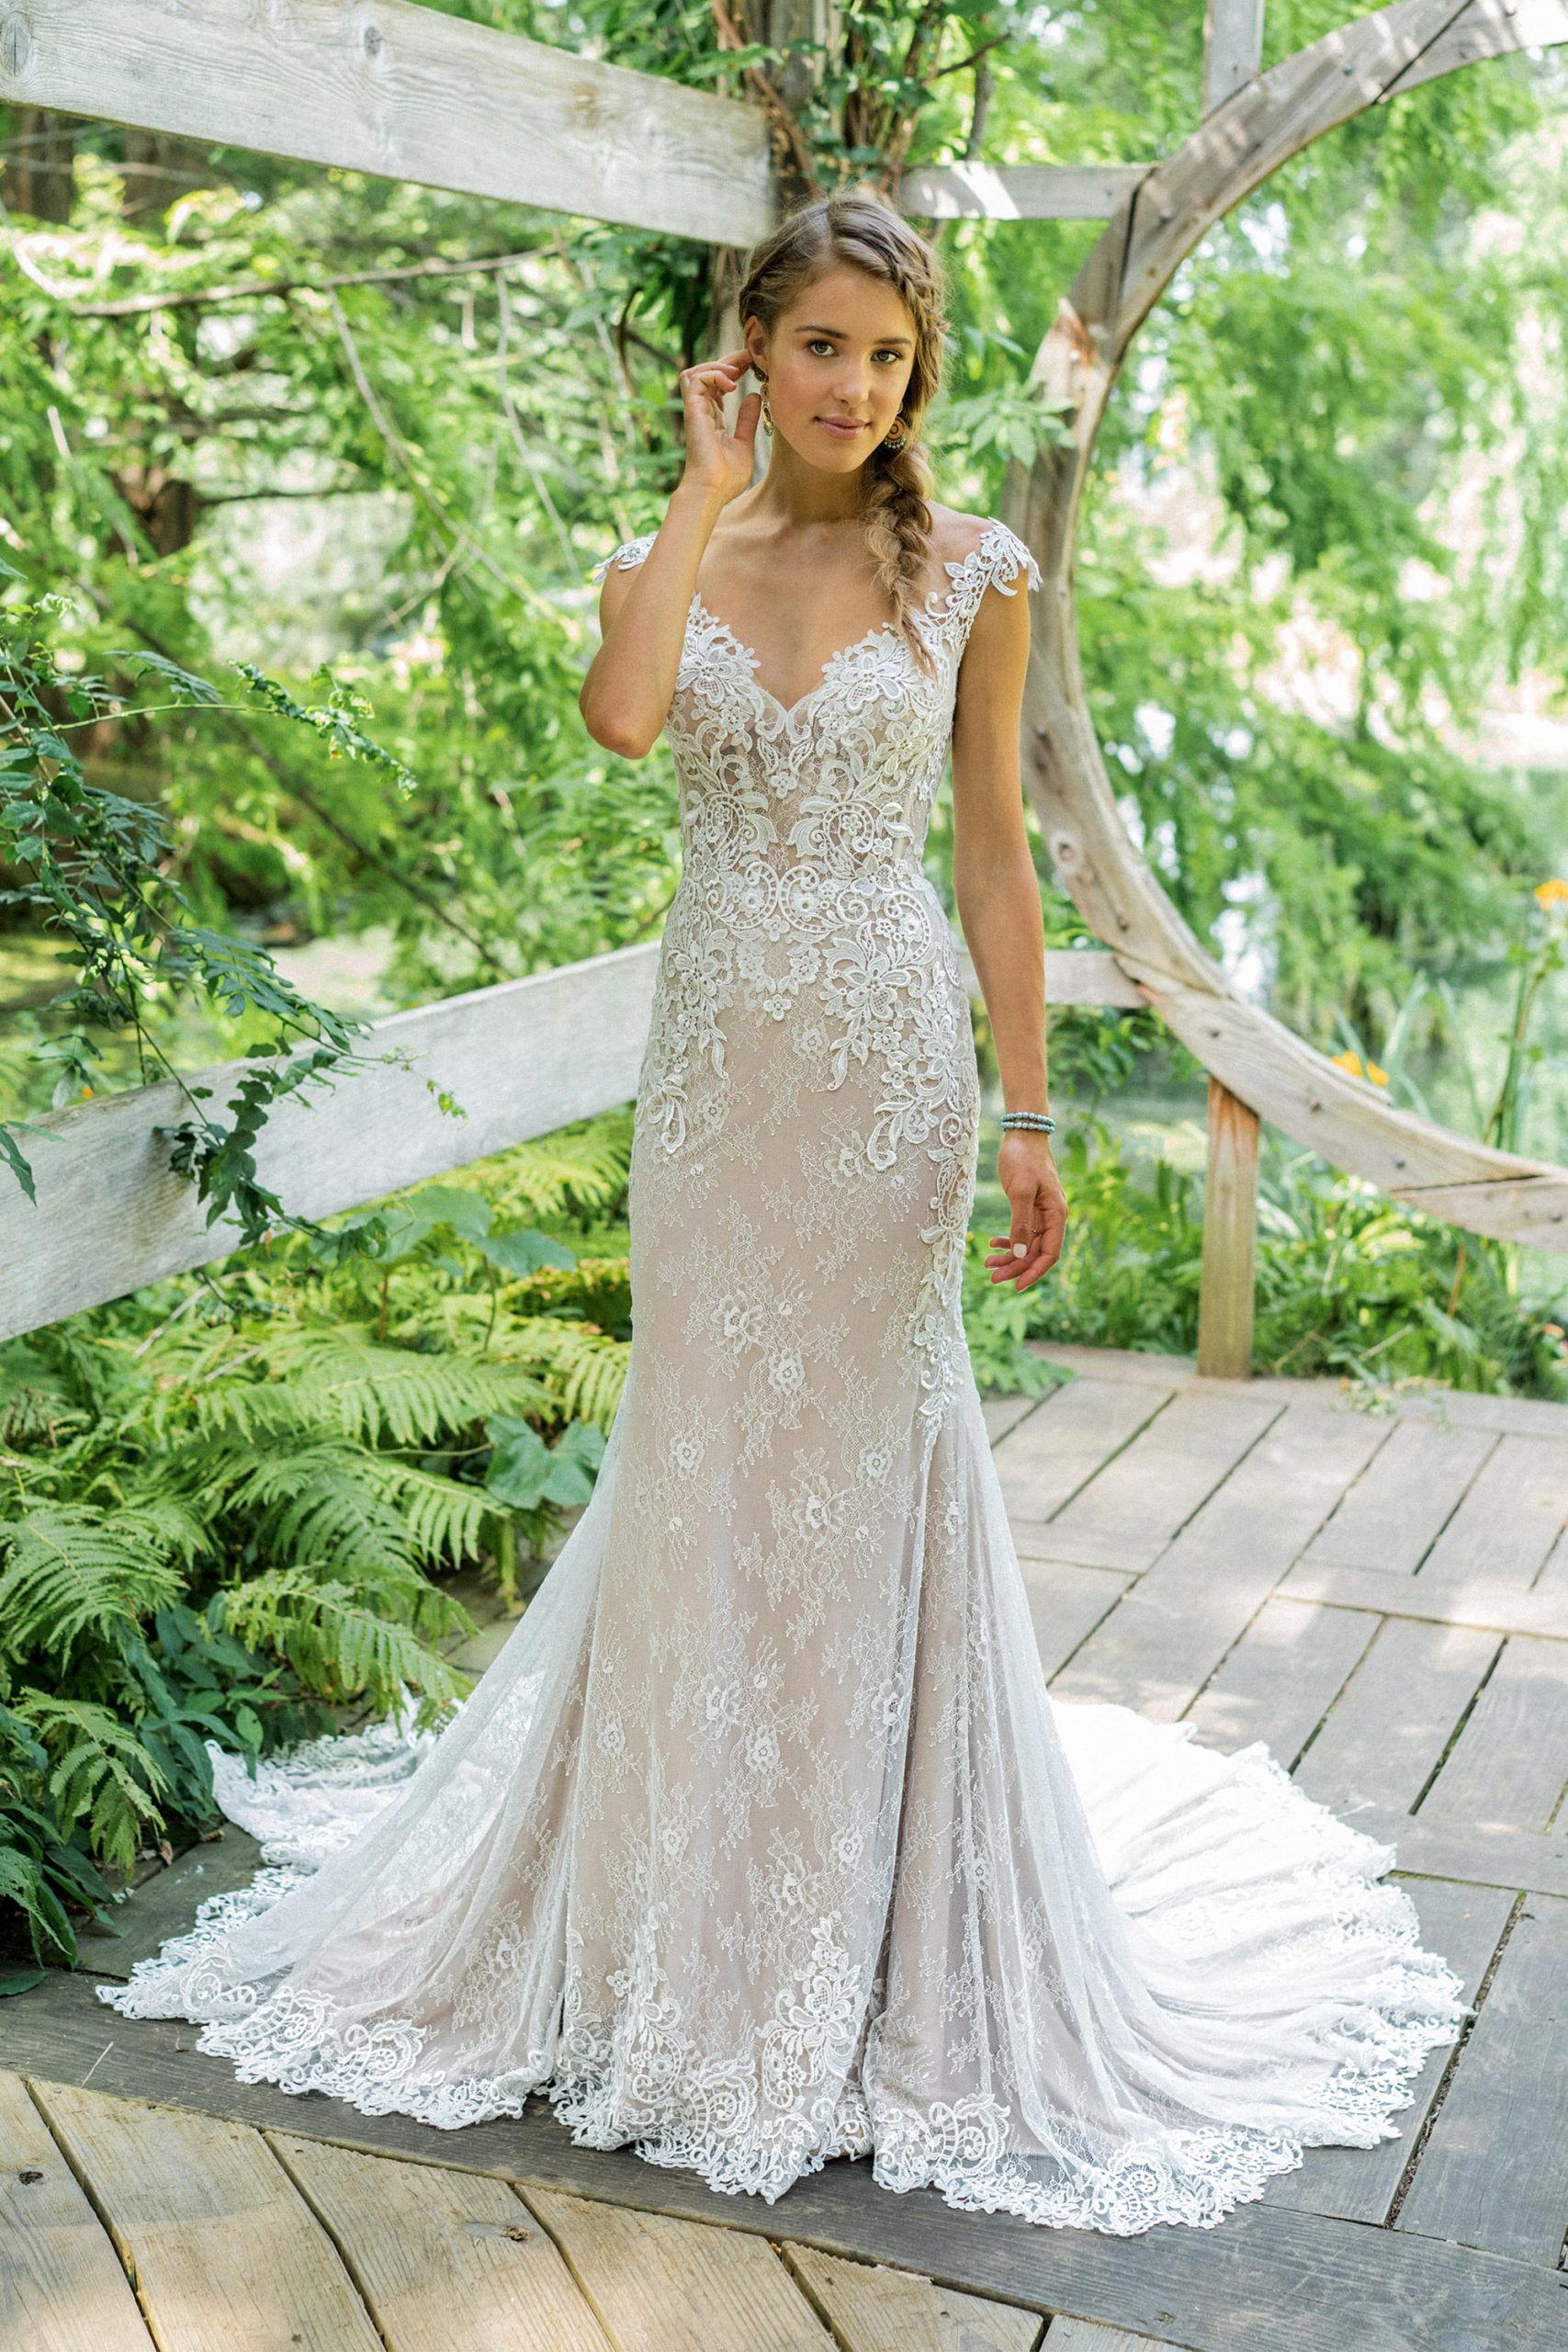 Lace Wedding Dresses 23 Of The Most Beautiful Lace Bridal Gowns